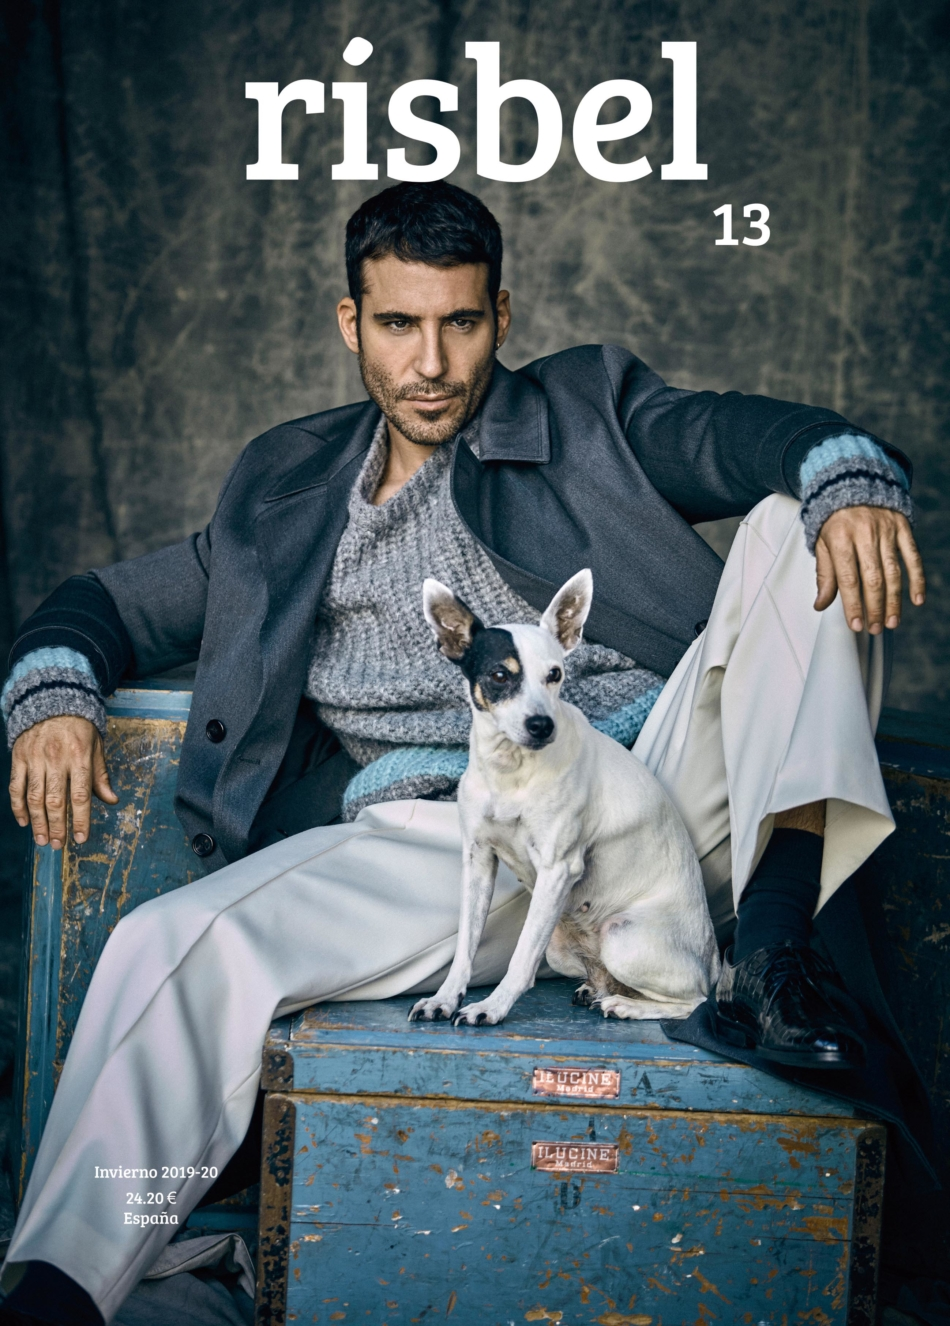 Valero Rioja Photography cover Risbel Miguel Angel Silvestre 1